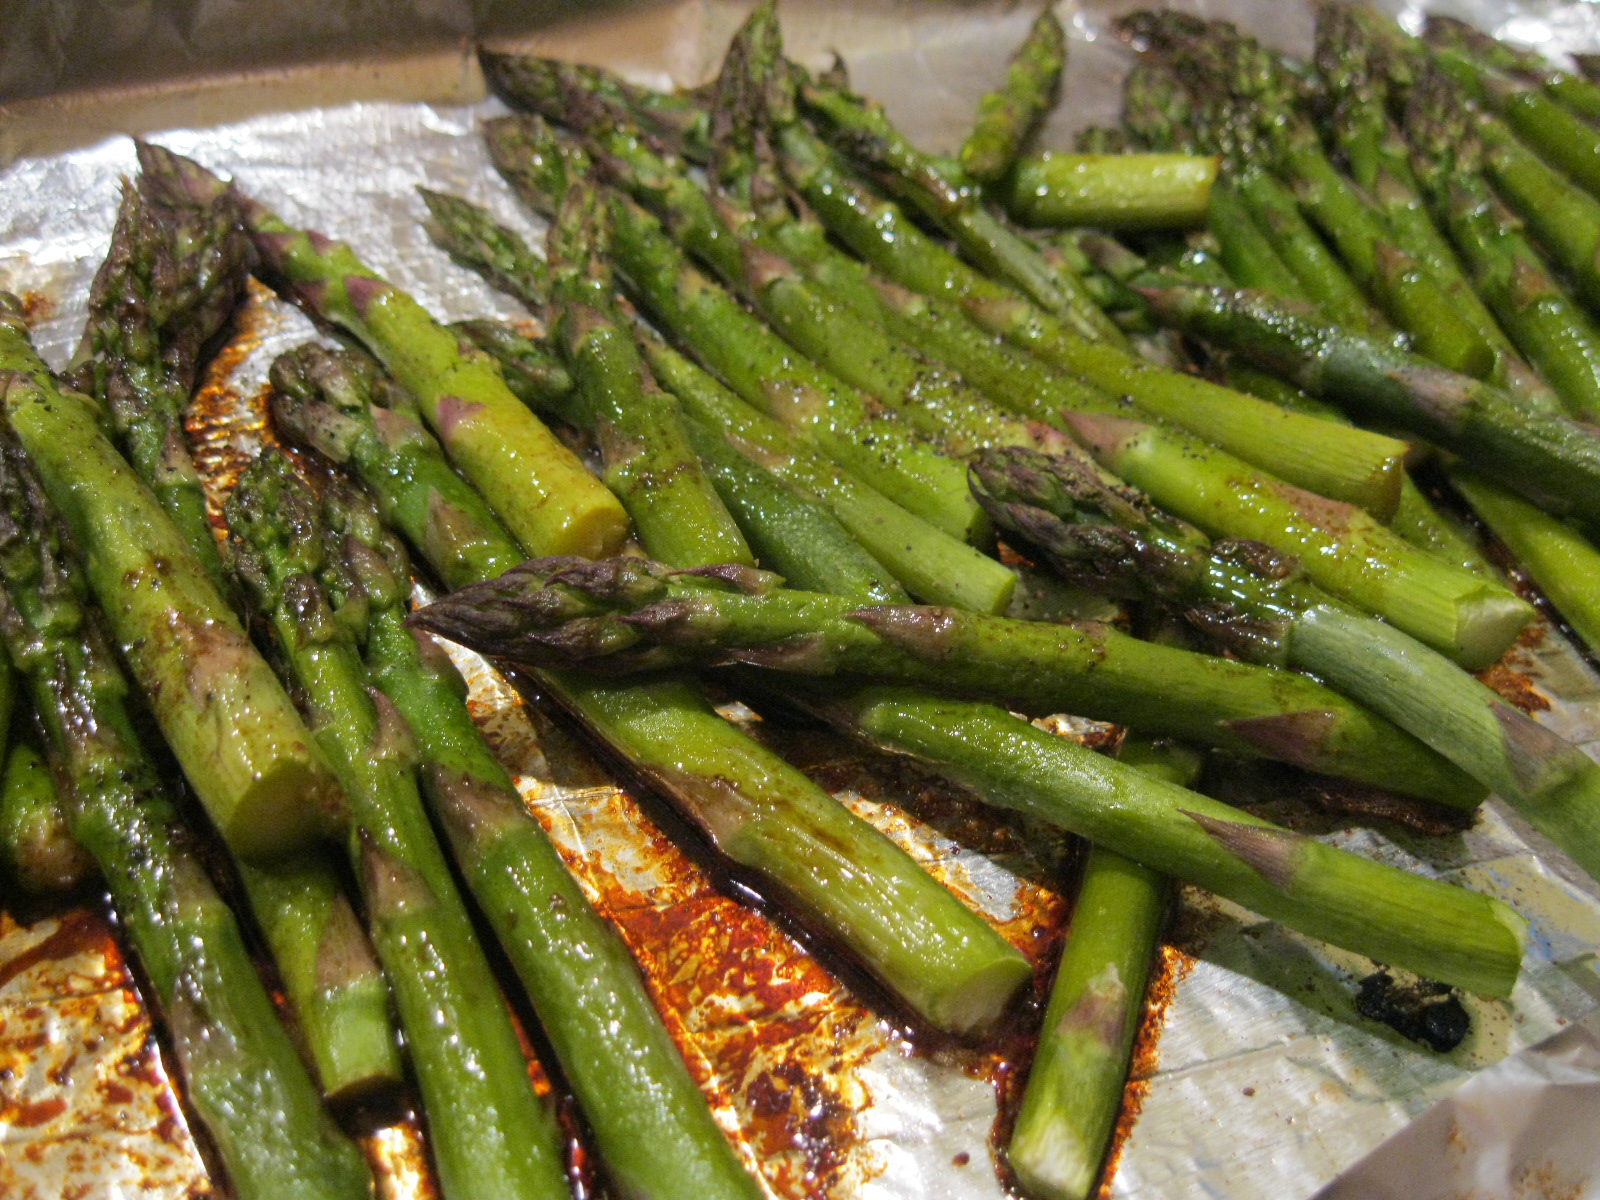 ... : Roasted Asparagus with Balsamic Brown Butter) | Oven Lovin' Runnin